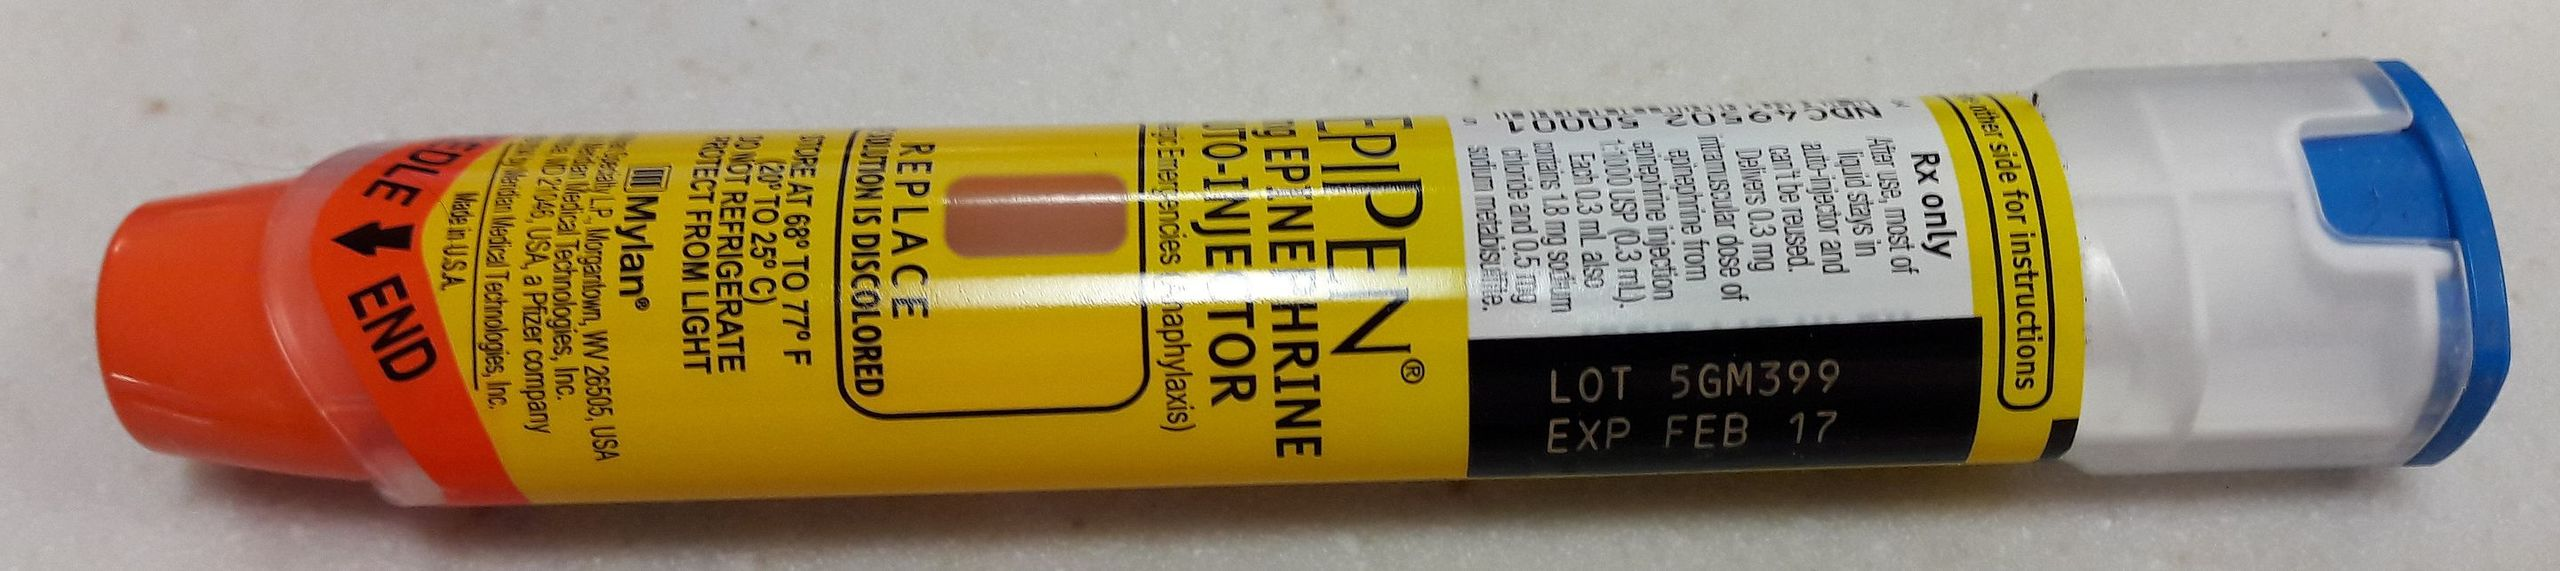 EpiPen 2016   Photo by Tokyogirl79 via Wikimedia's Creative Commons; St. George News